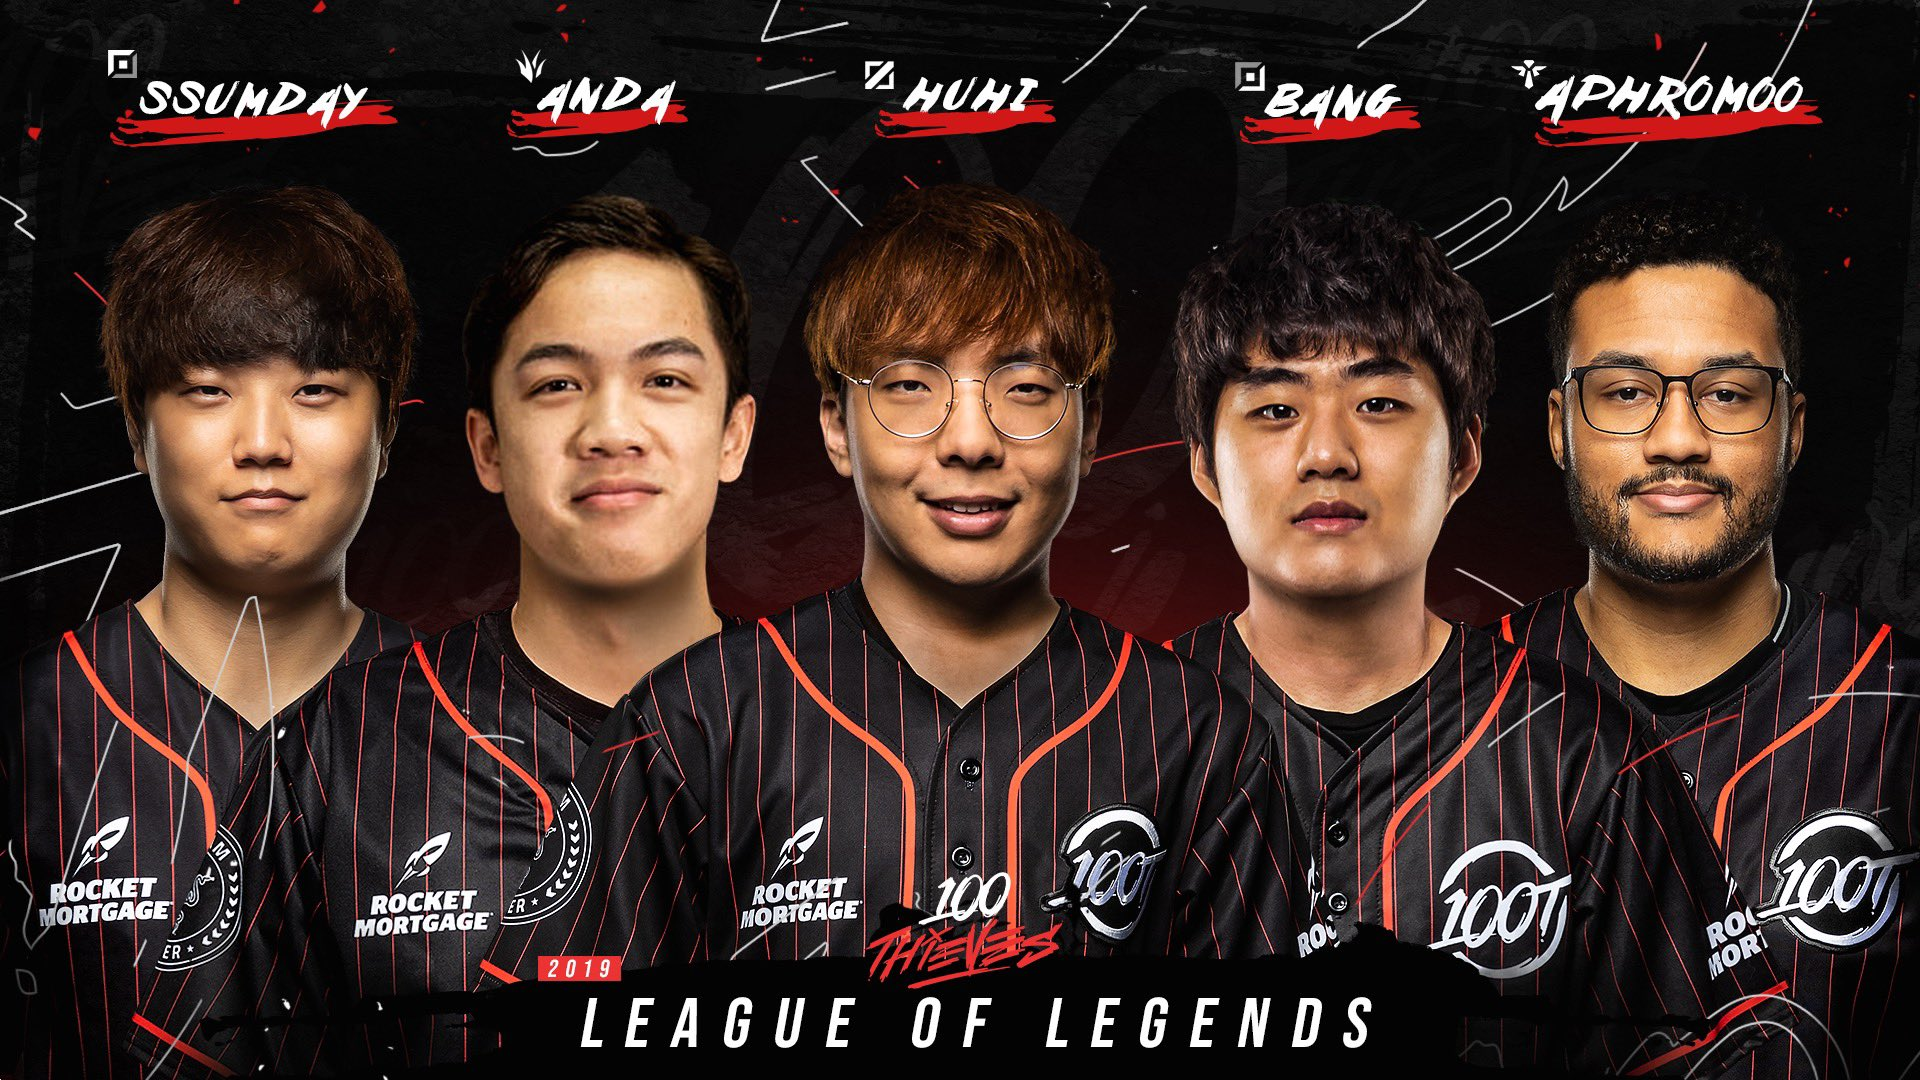 League of Legends: Winners of the LCS Off-Season - Inven Global